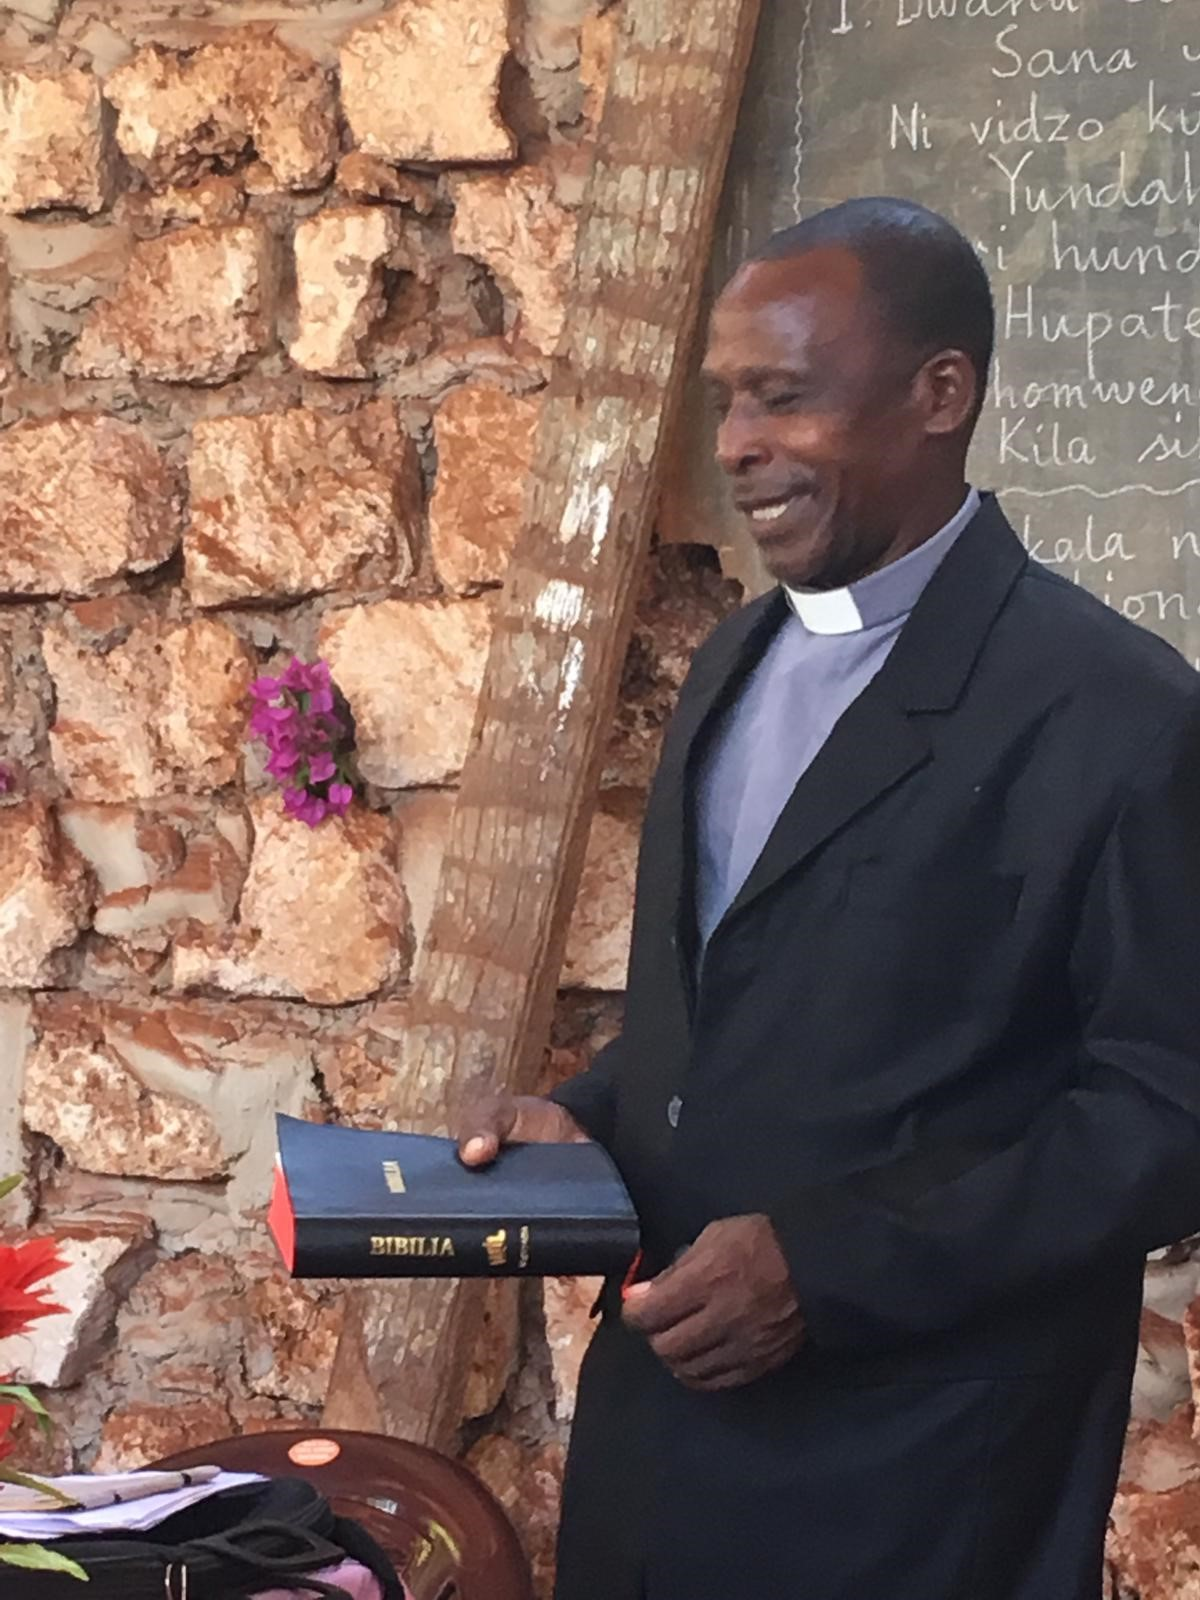 Leader with new Bible translation